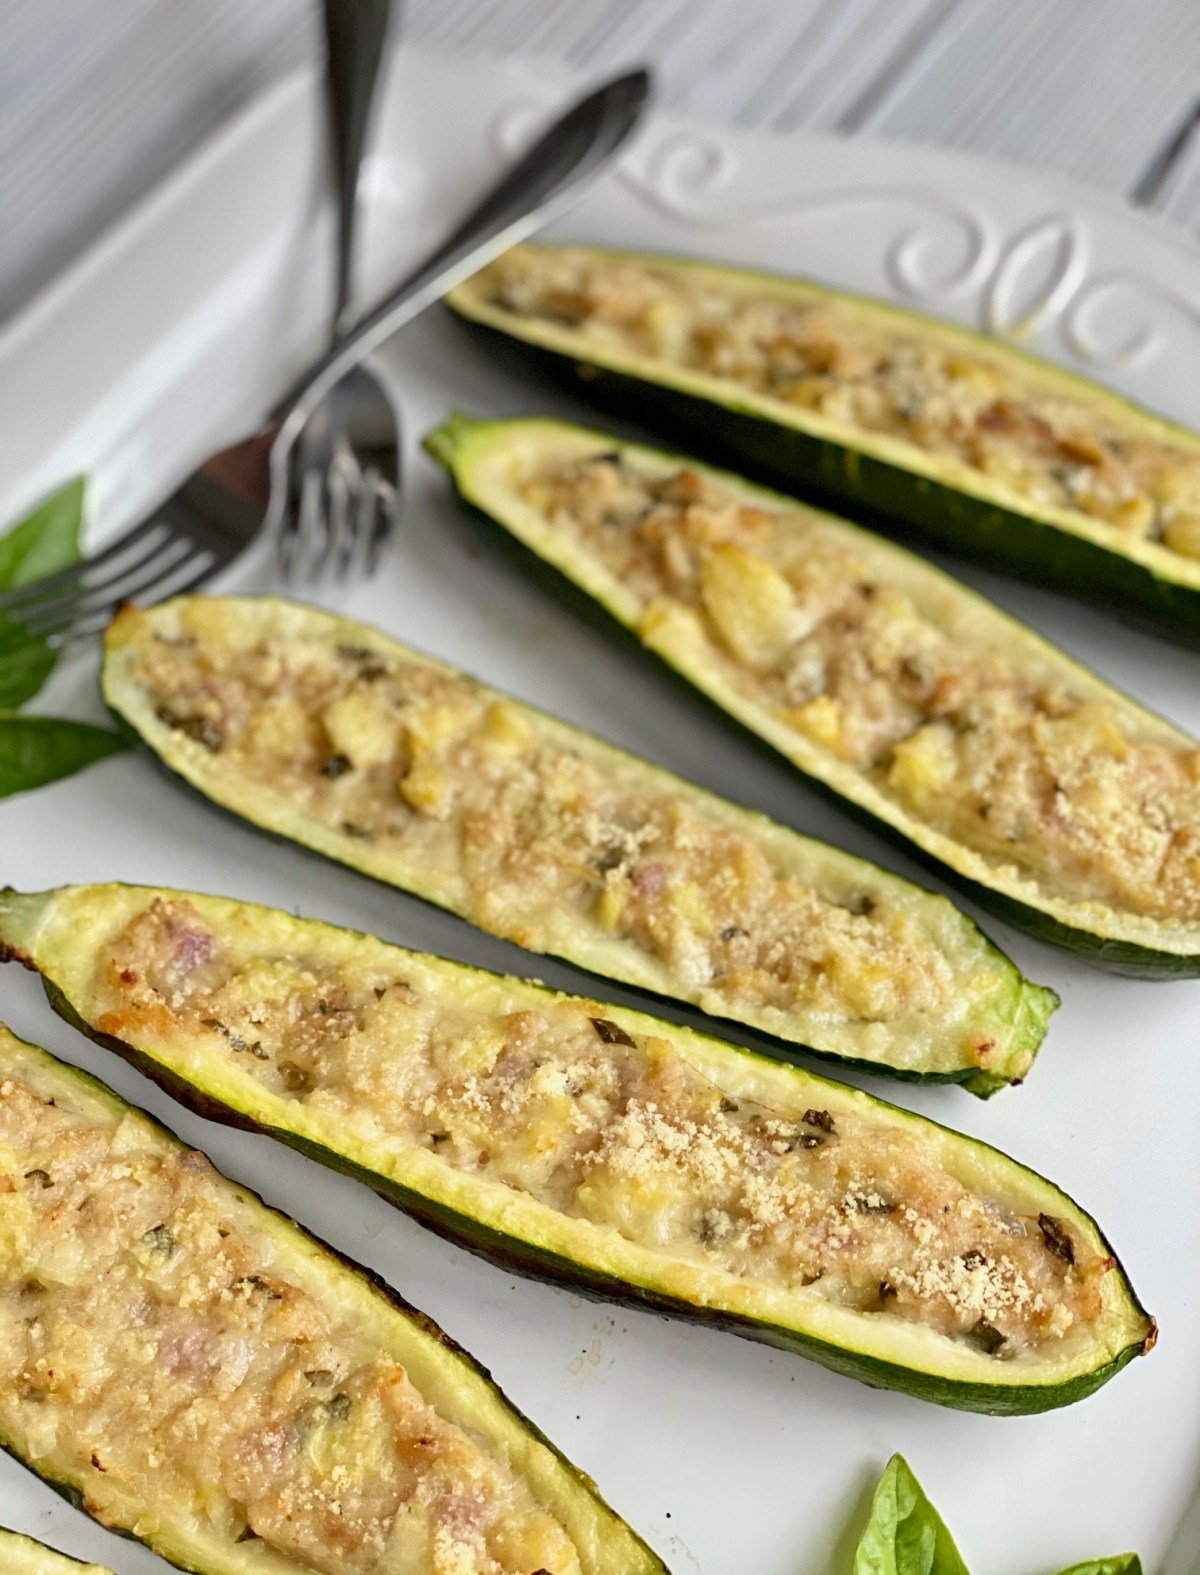 Grilled Stuffed Zucchini by Happylifeblogspot.com #grilledzucchini #grillrecipes #healthyrecipes #lowcarbrecipes #zucchinirecipes #meatless #stuffedzucchini #